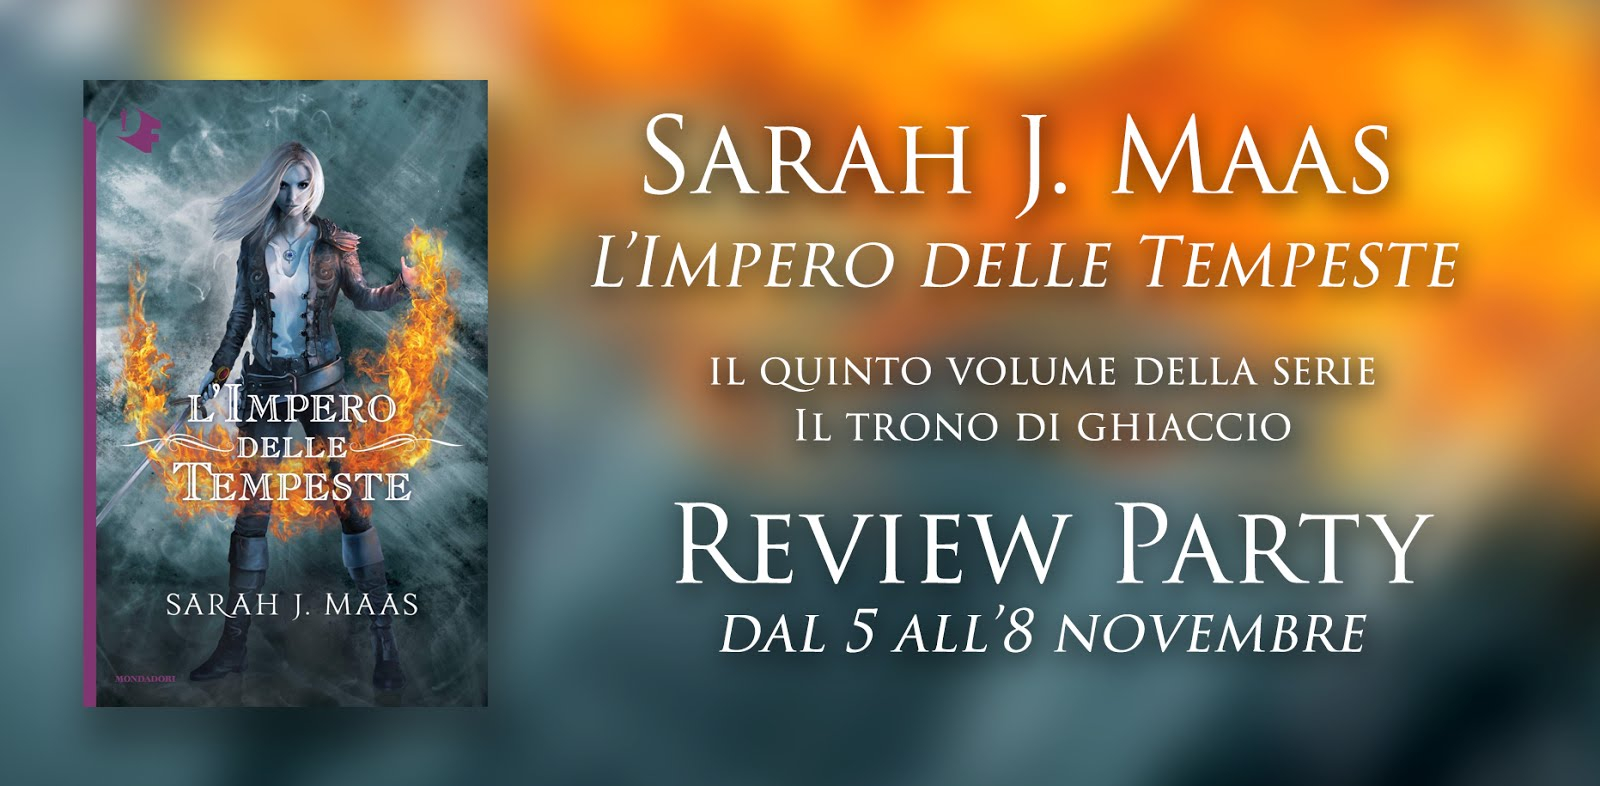 REVIEW PARTY IN ARRIVO